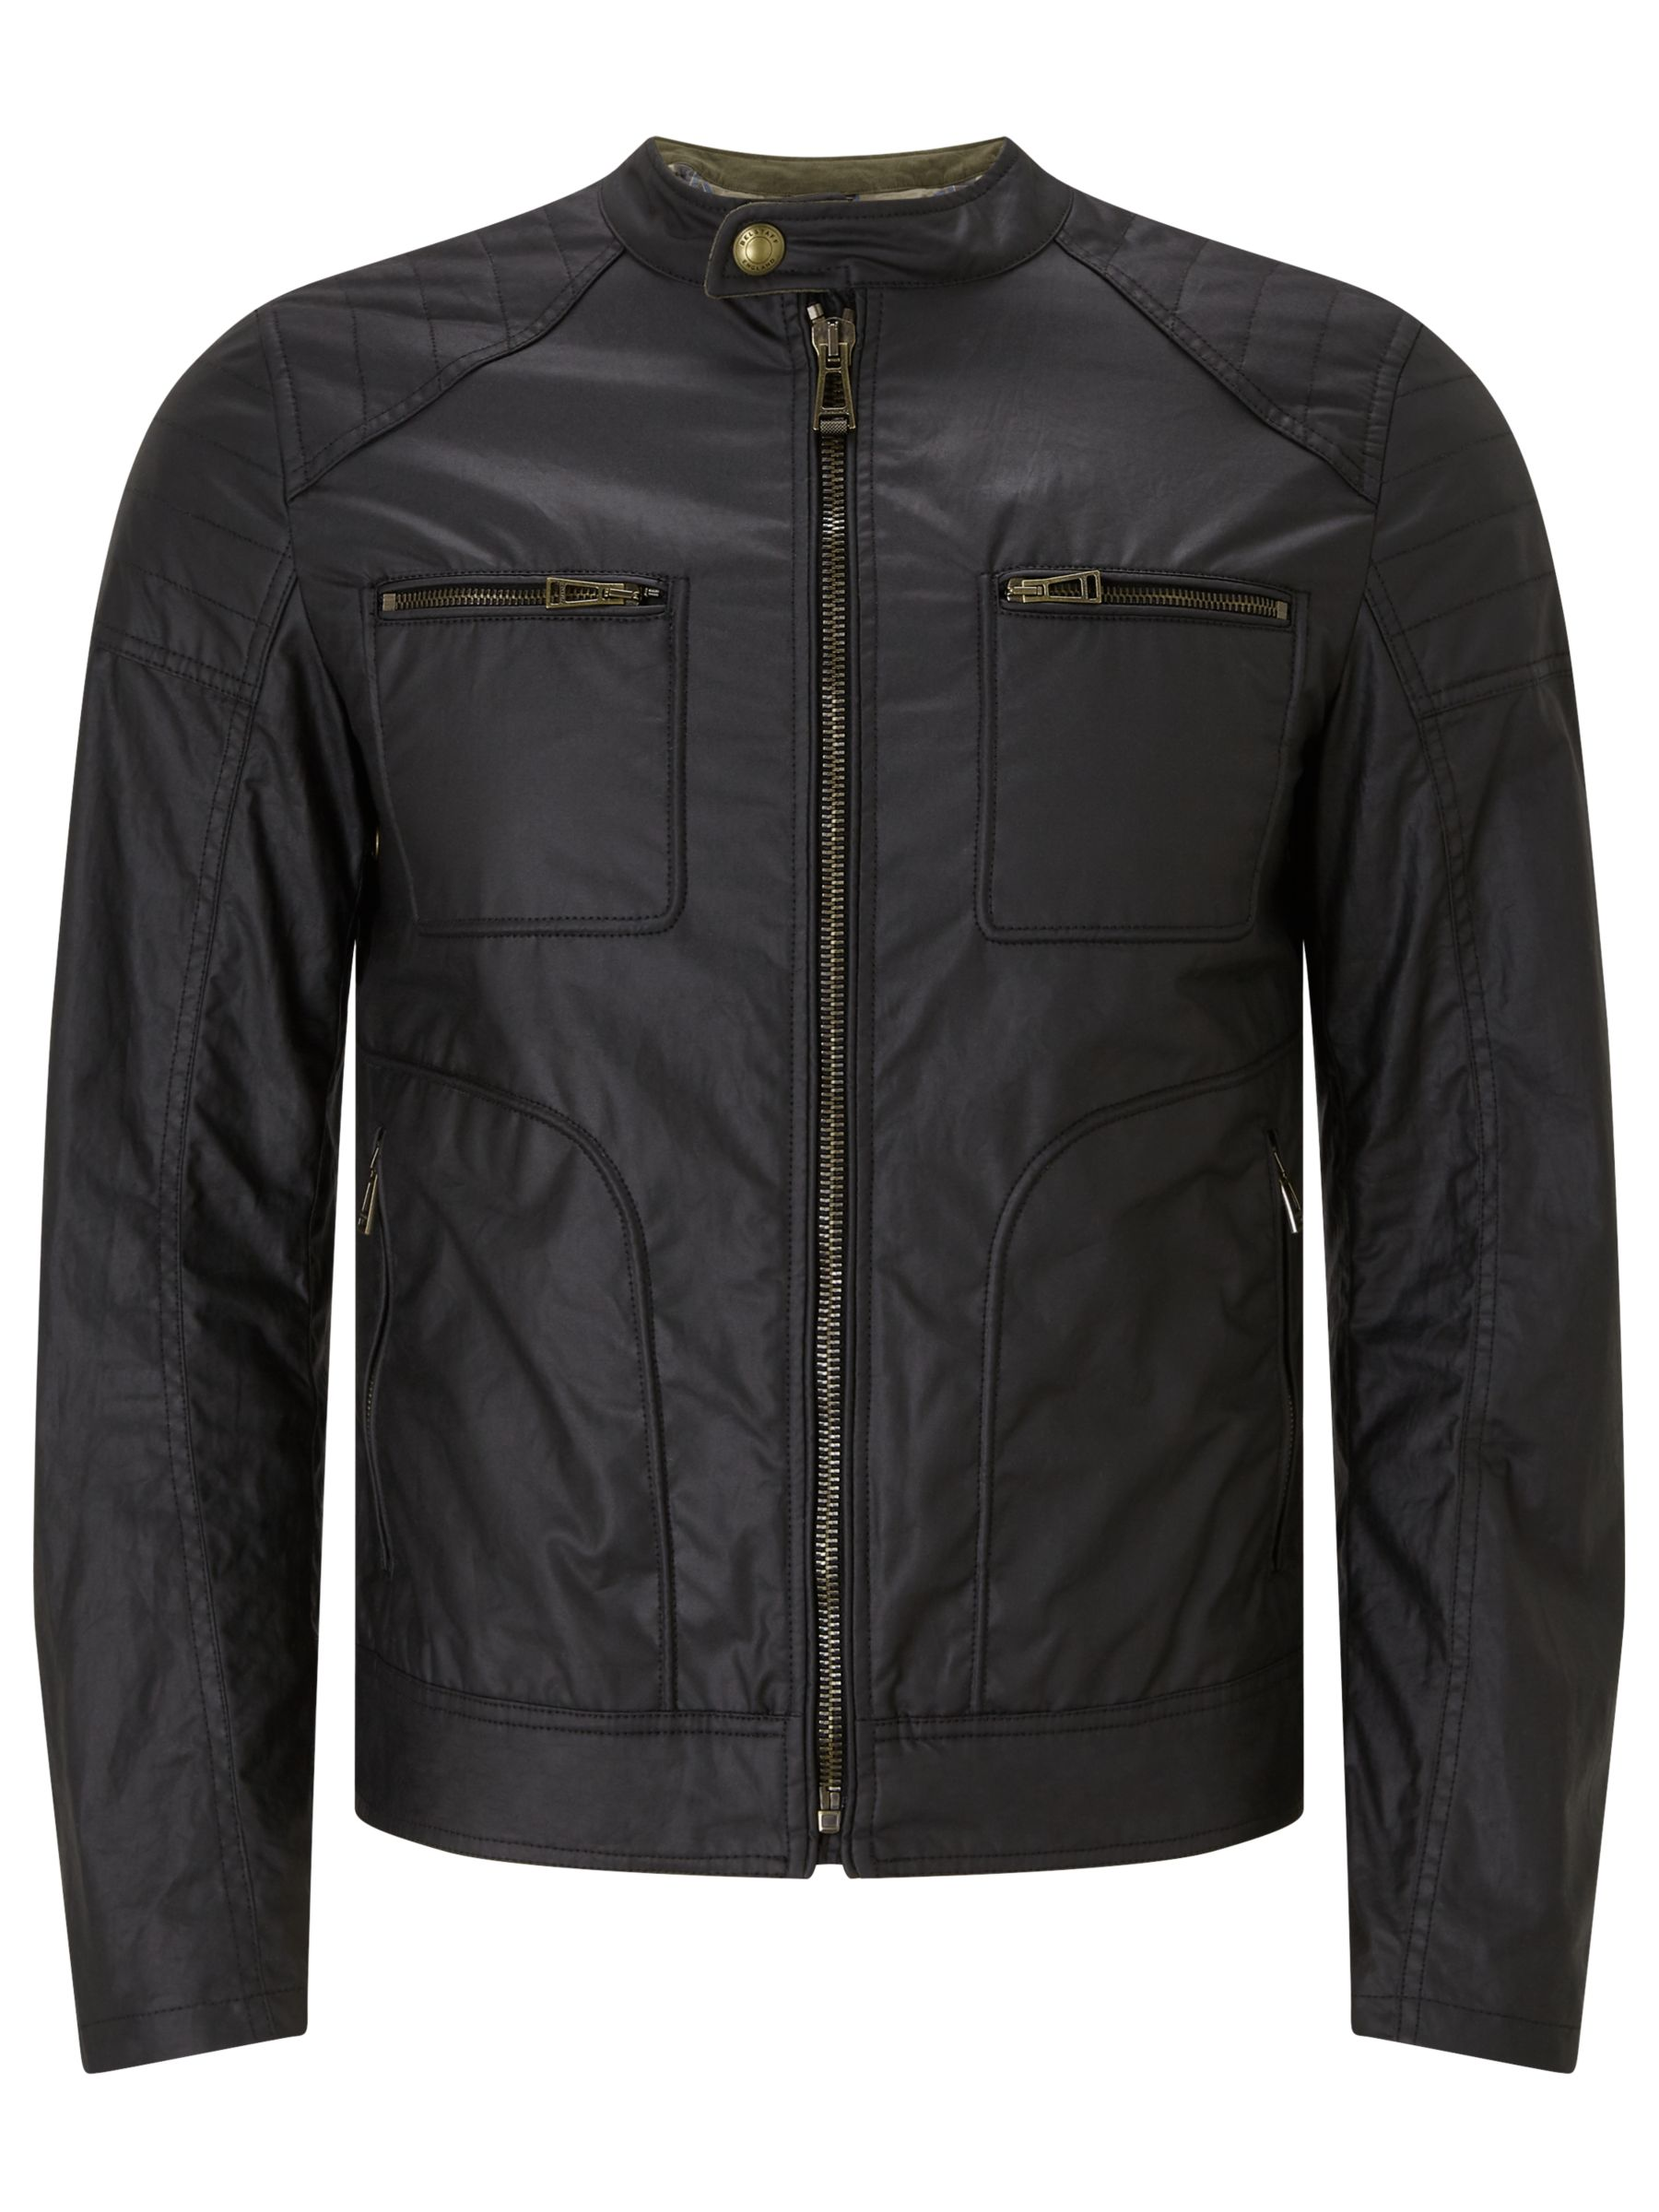 Belstaff Belstaff Weybridge Rubberized Jersey Jacket, Black